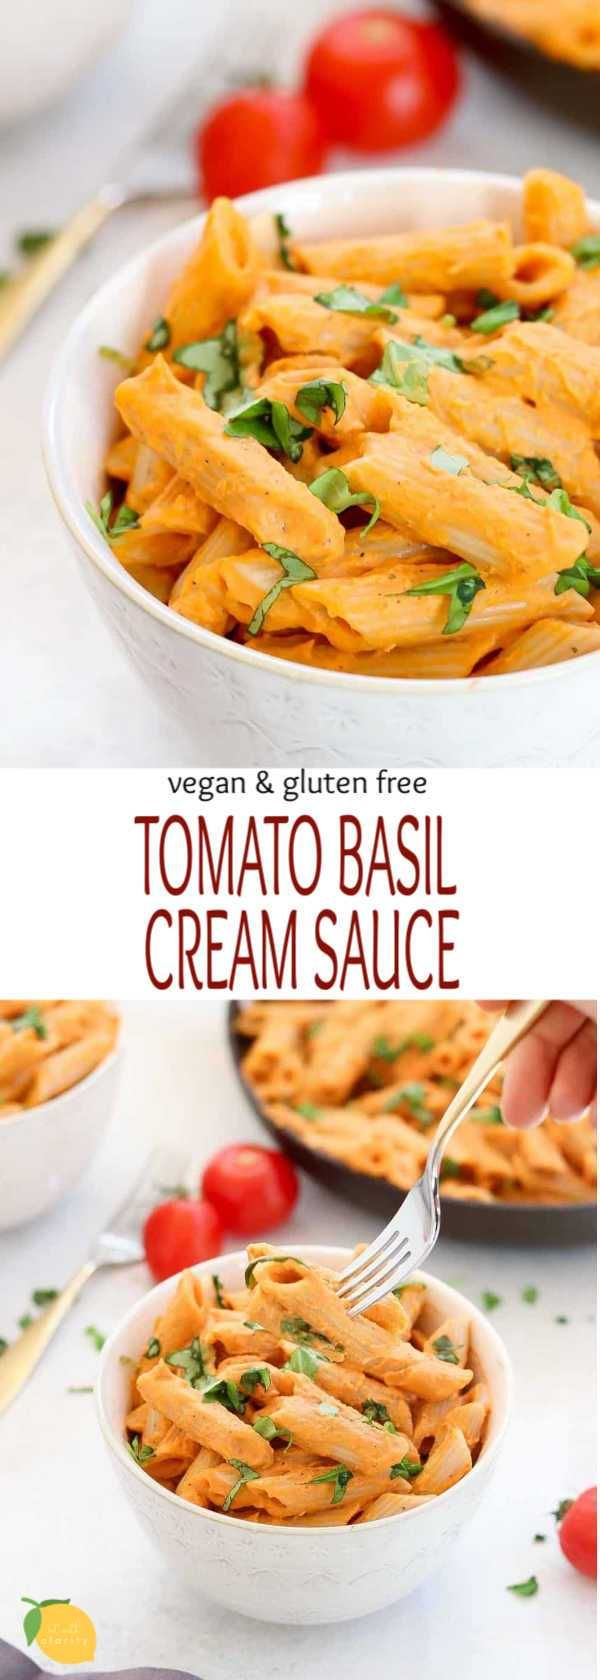 Vegan Tomato Basil Cream Sauce and Pasta | Eat With Clarity